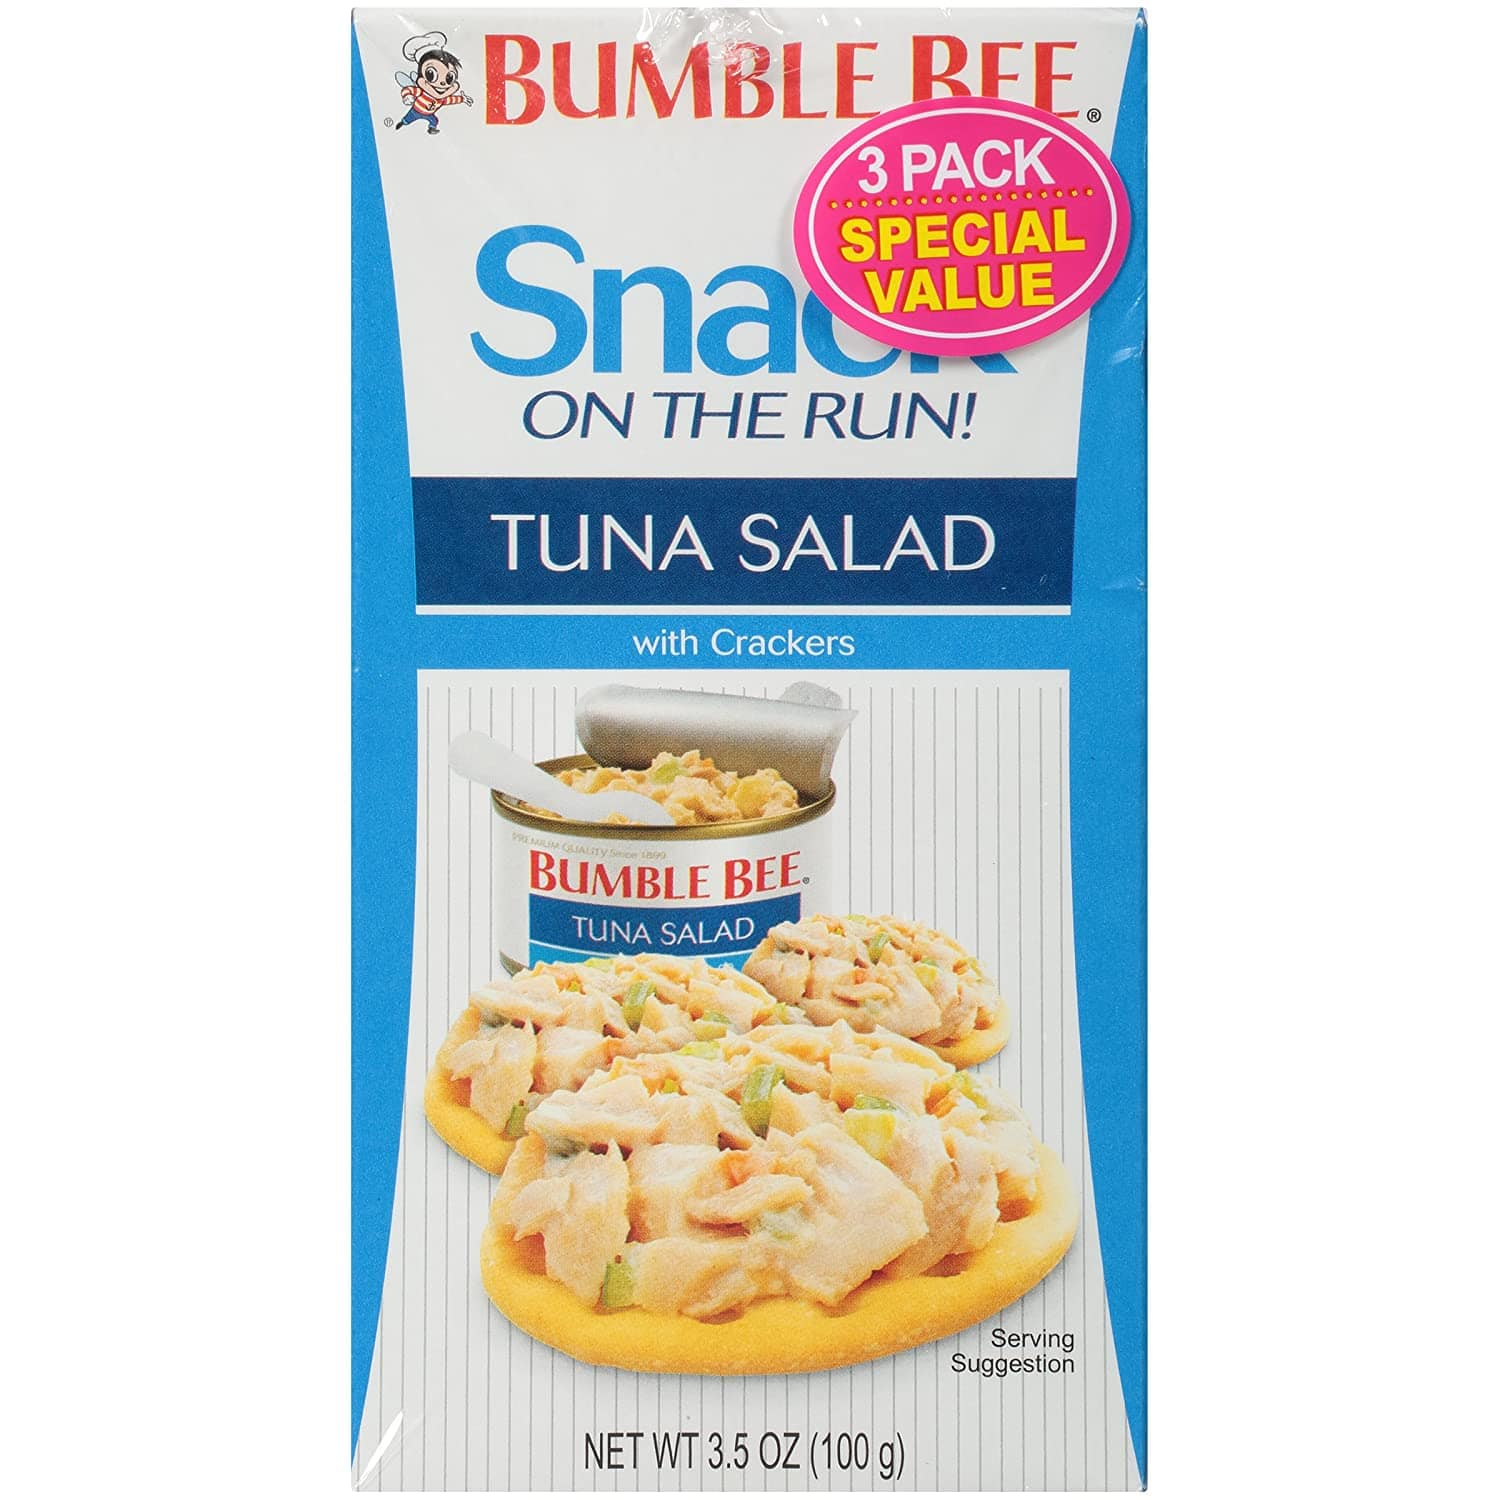 3-Pack 3.4-Oz Bumble Bee Snack On The Run! Tuna Salad with Crackers $2.52 w/ S&S + Free Shipping w/ Prime or on $25+